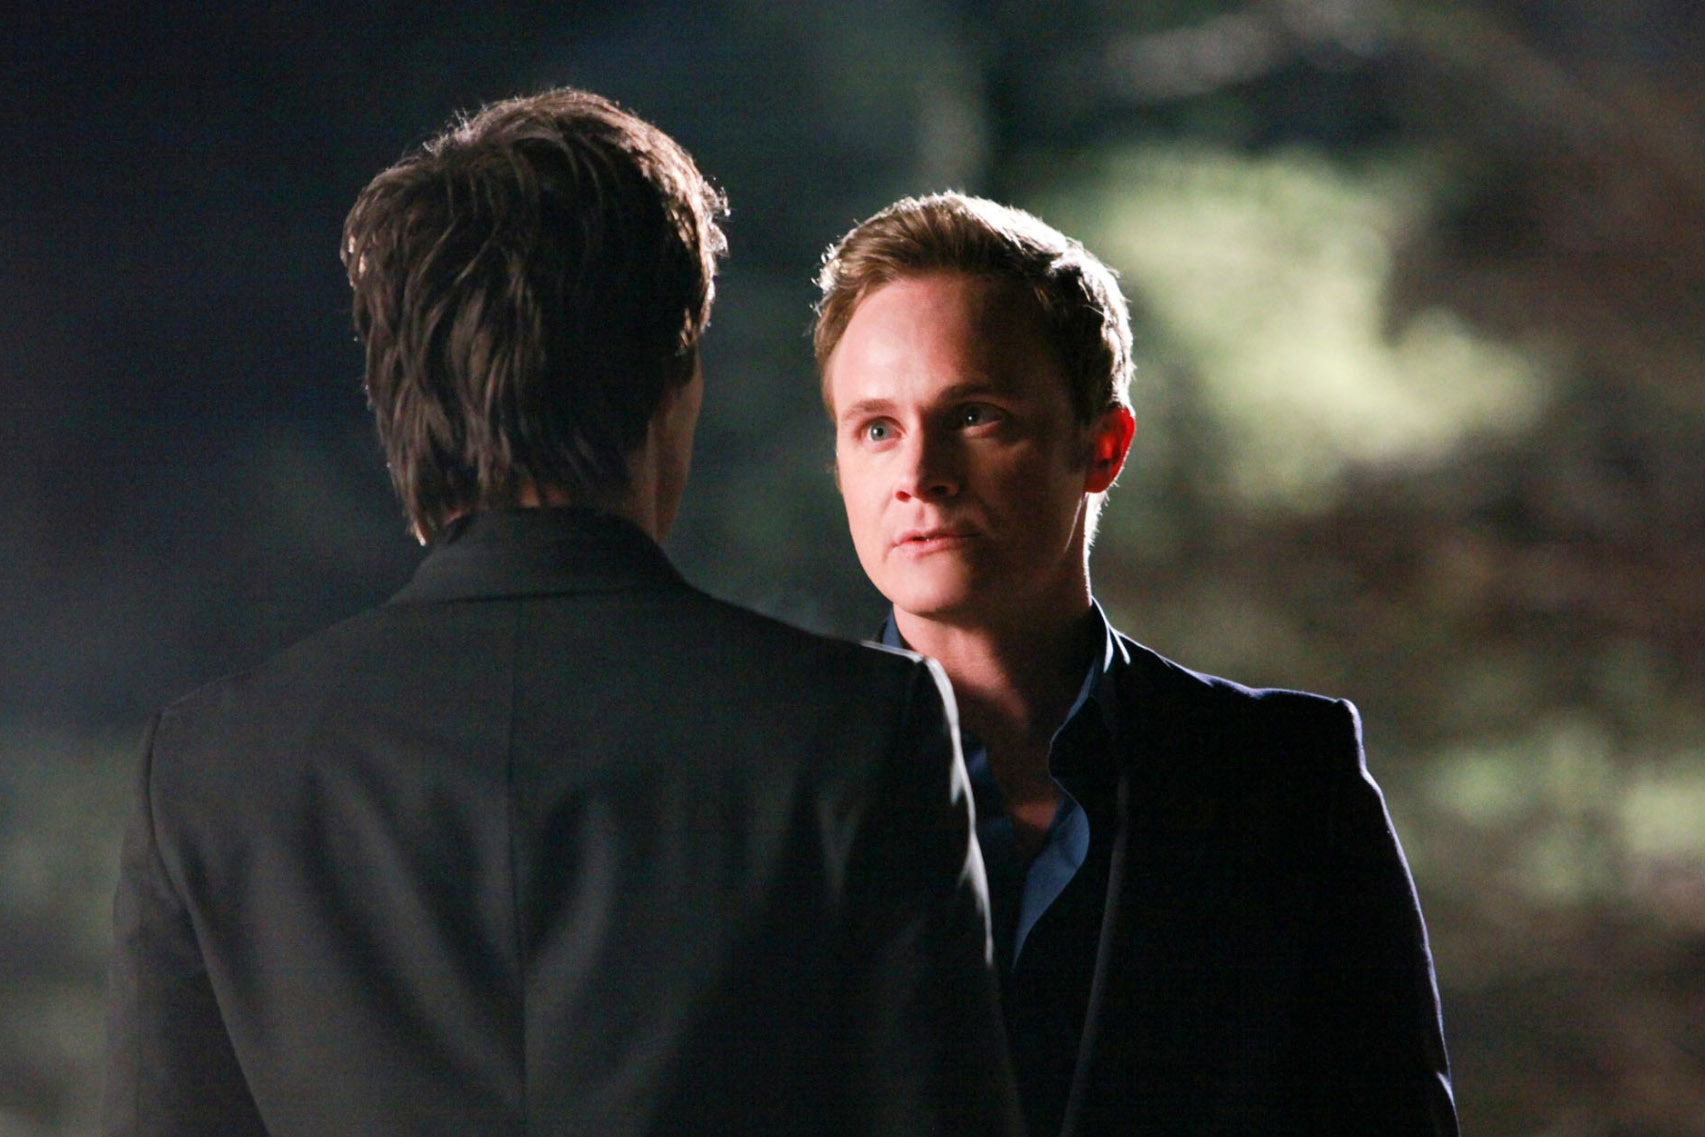 http://images2.fanpop.com/image/photos/11500000/1x18-Under-control-the-vampire-diaries-tv-show-11506081-1705-1137.jpg